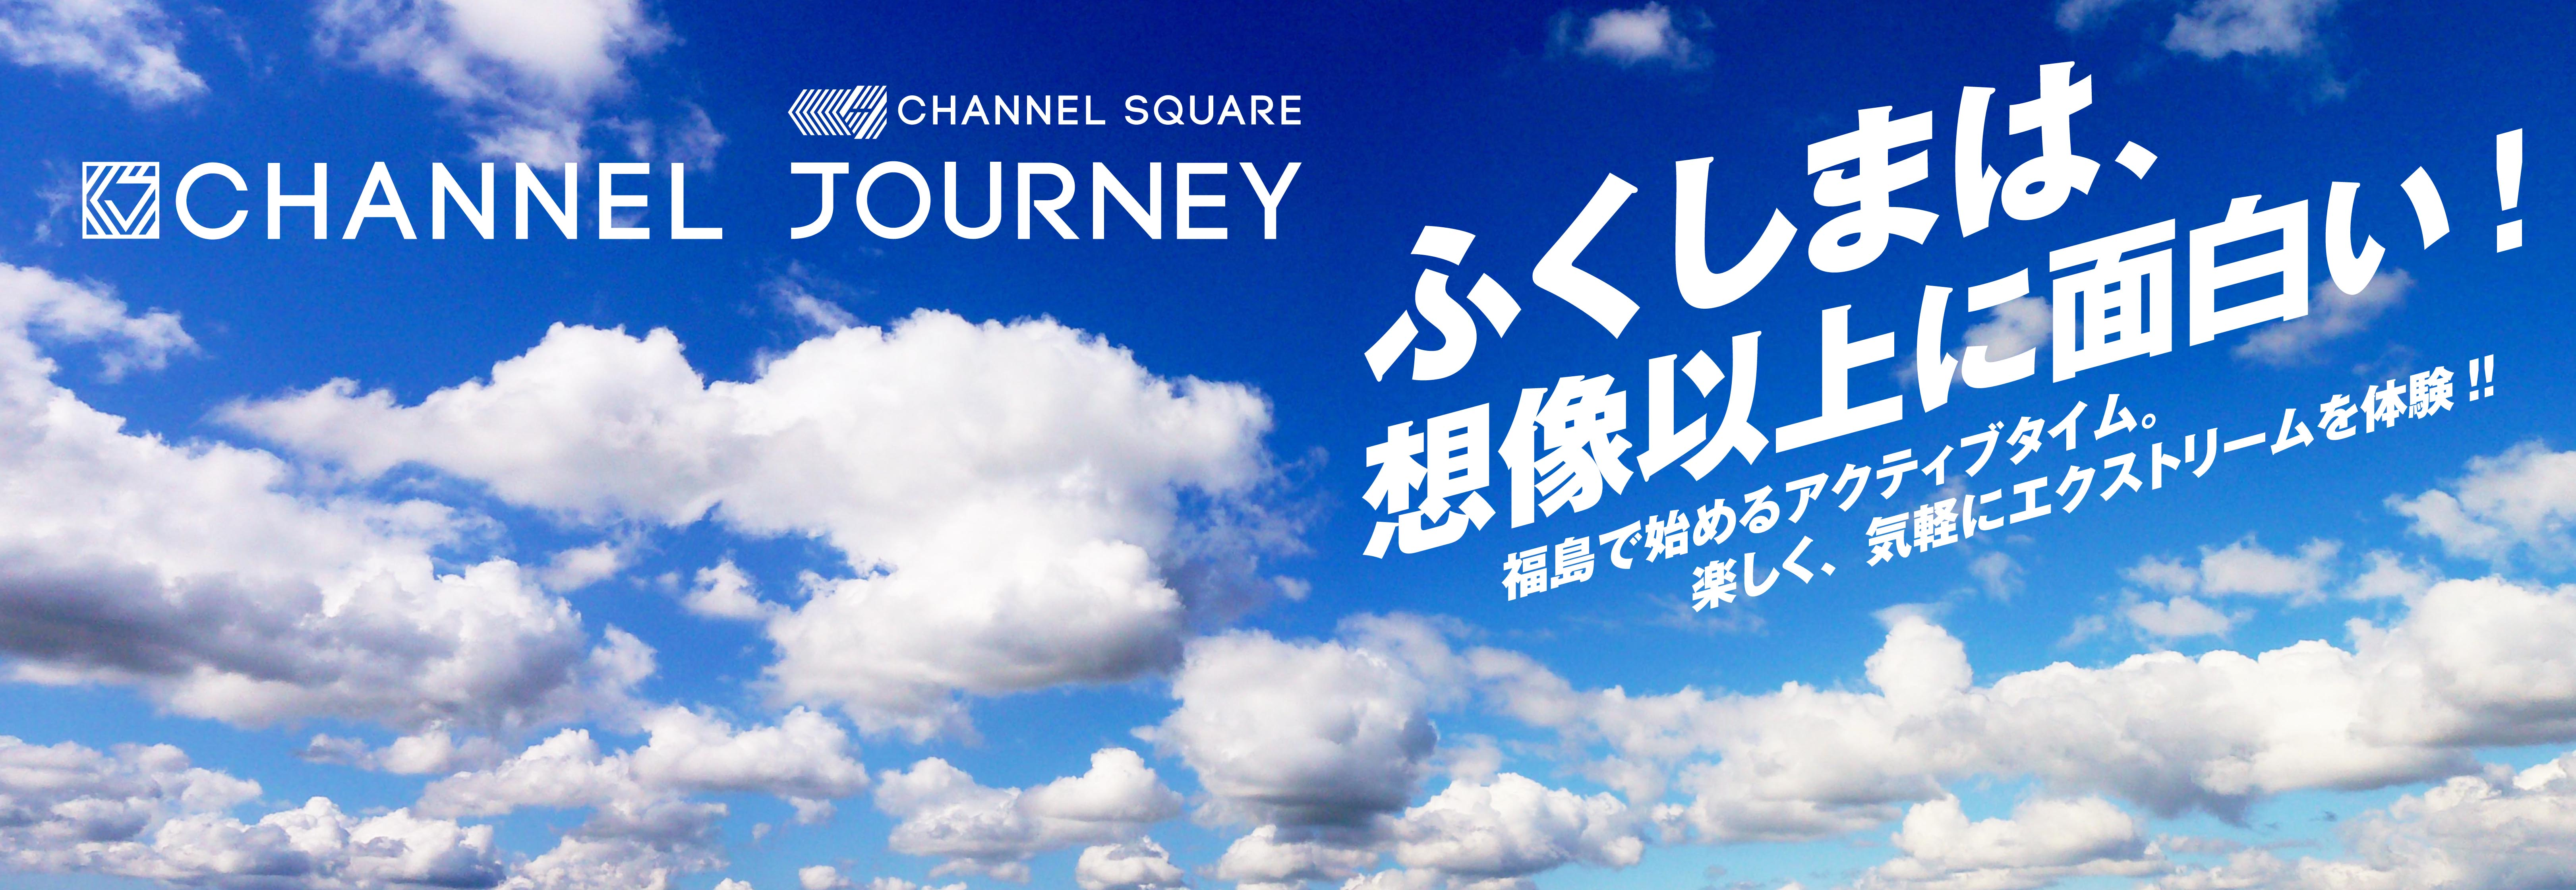 CHANNEL JOURNEY